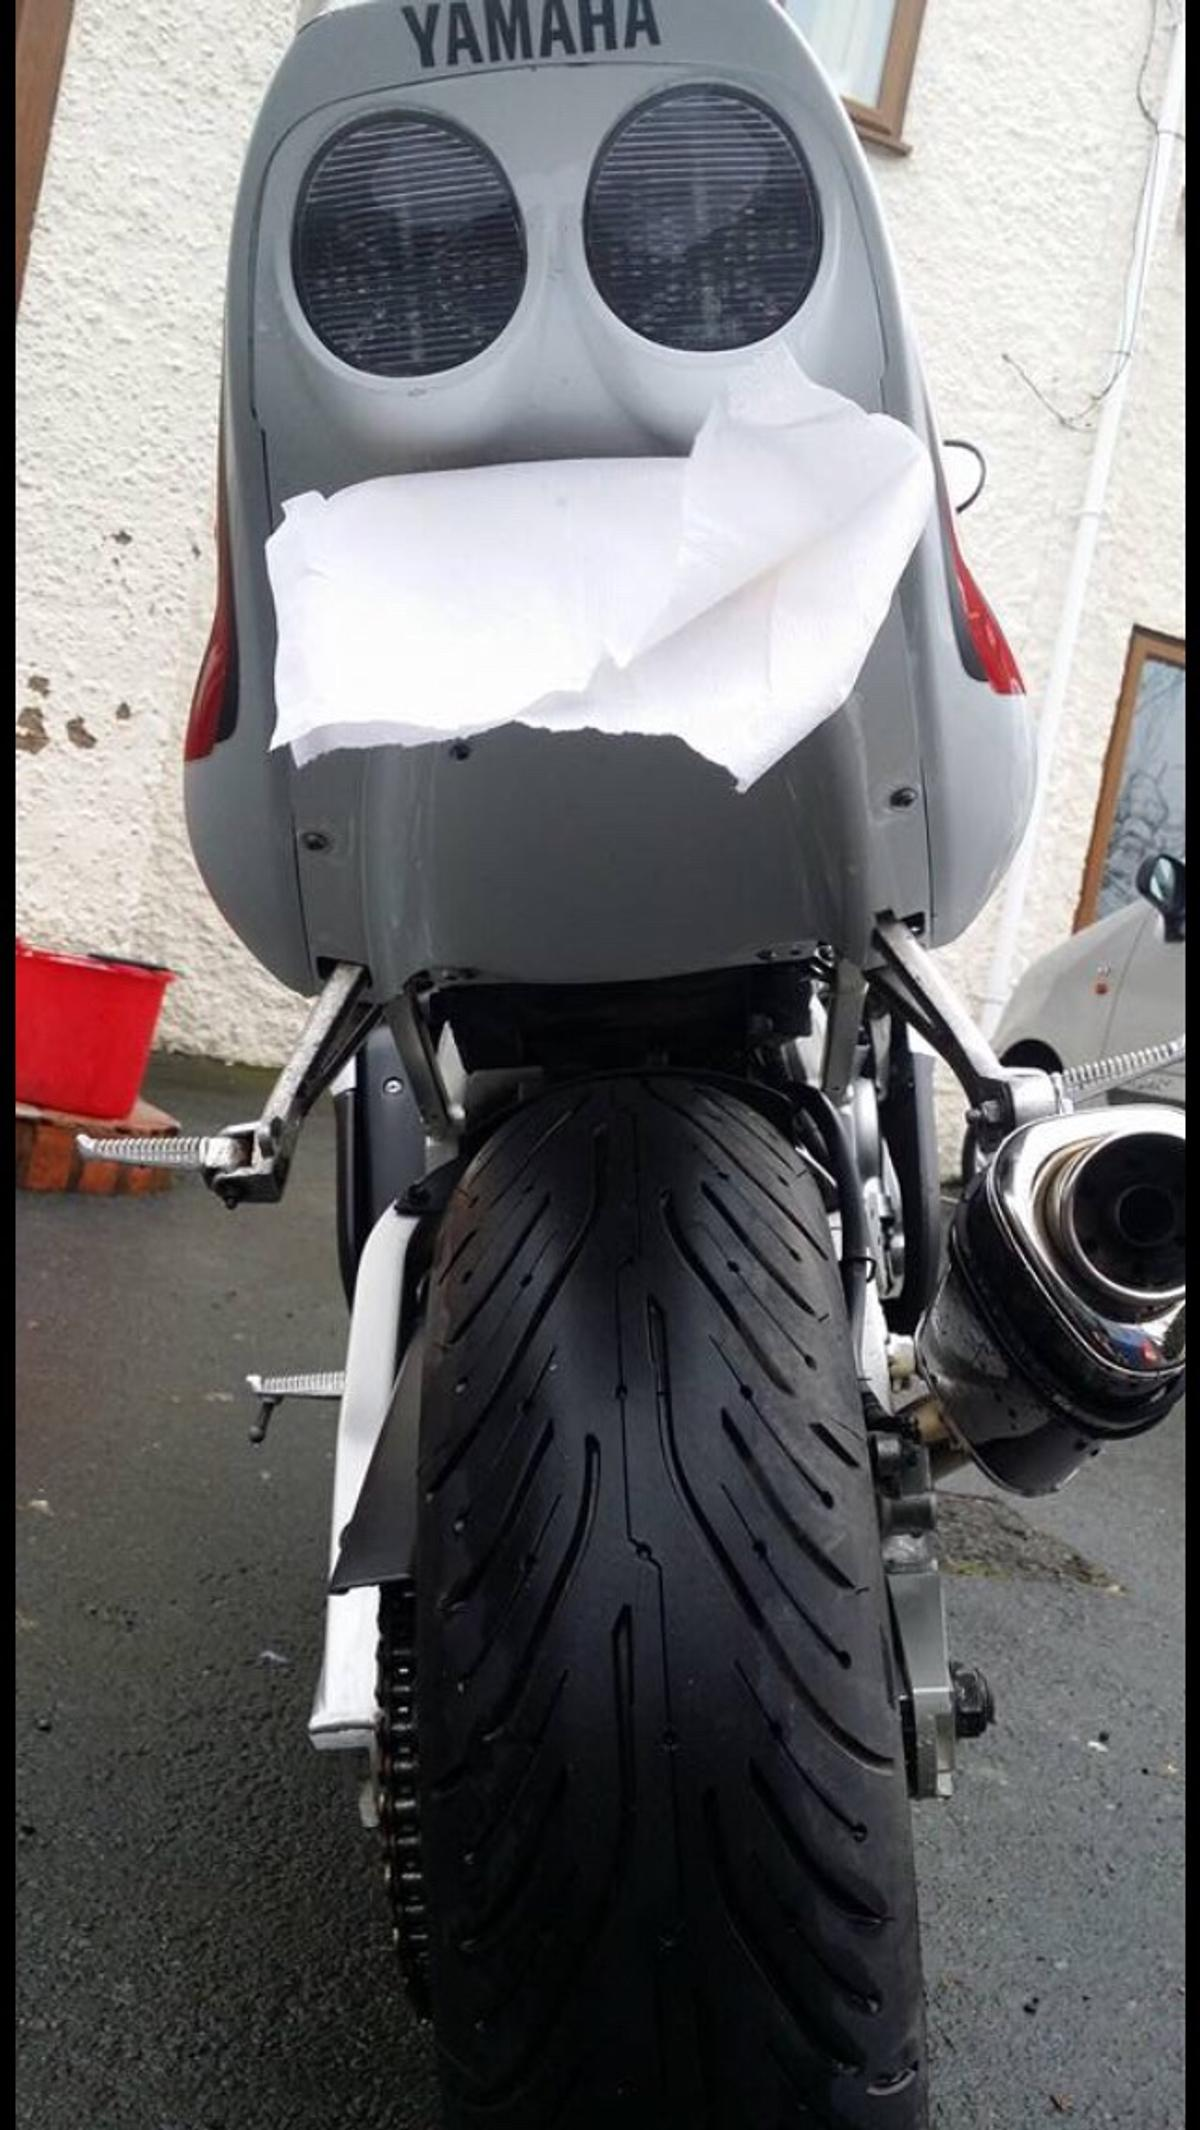 Yamaha R6 in WR2 Hills for £2,100 00 for sale - Shpock